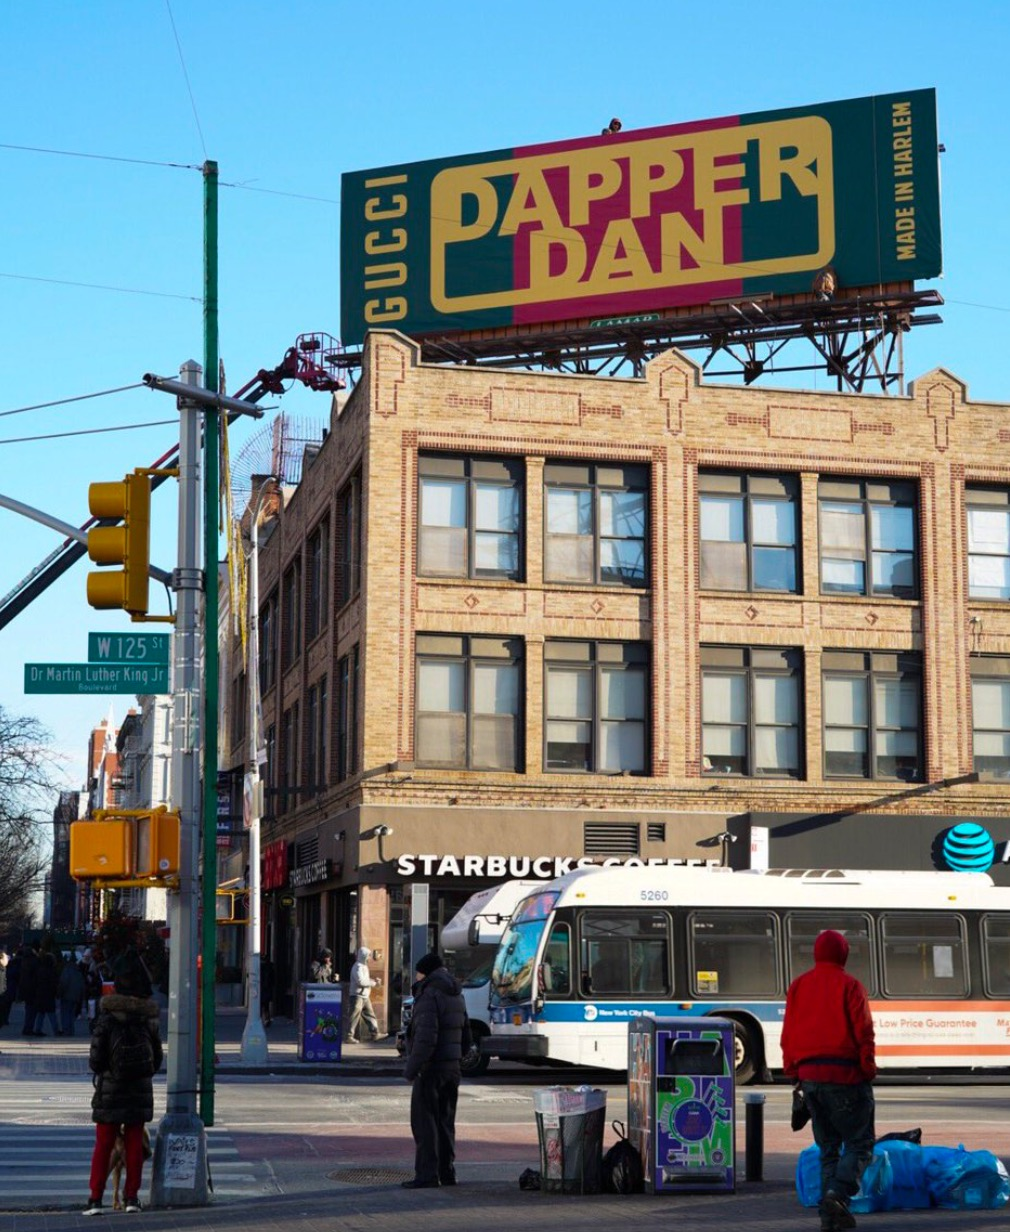 Gucci by Dapper Dan